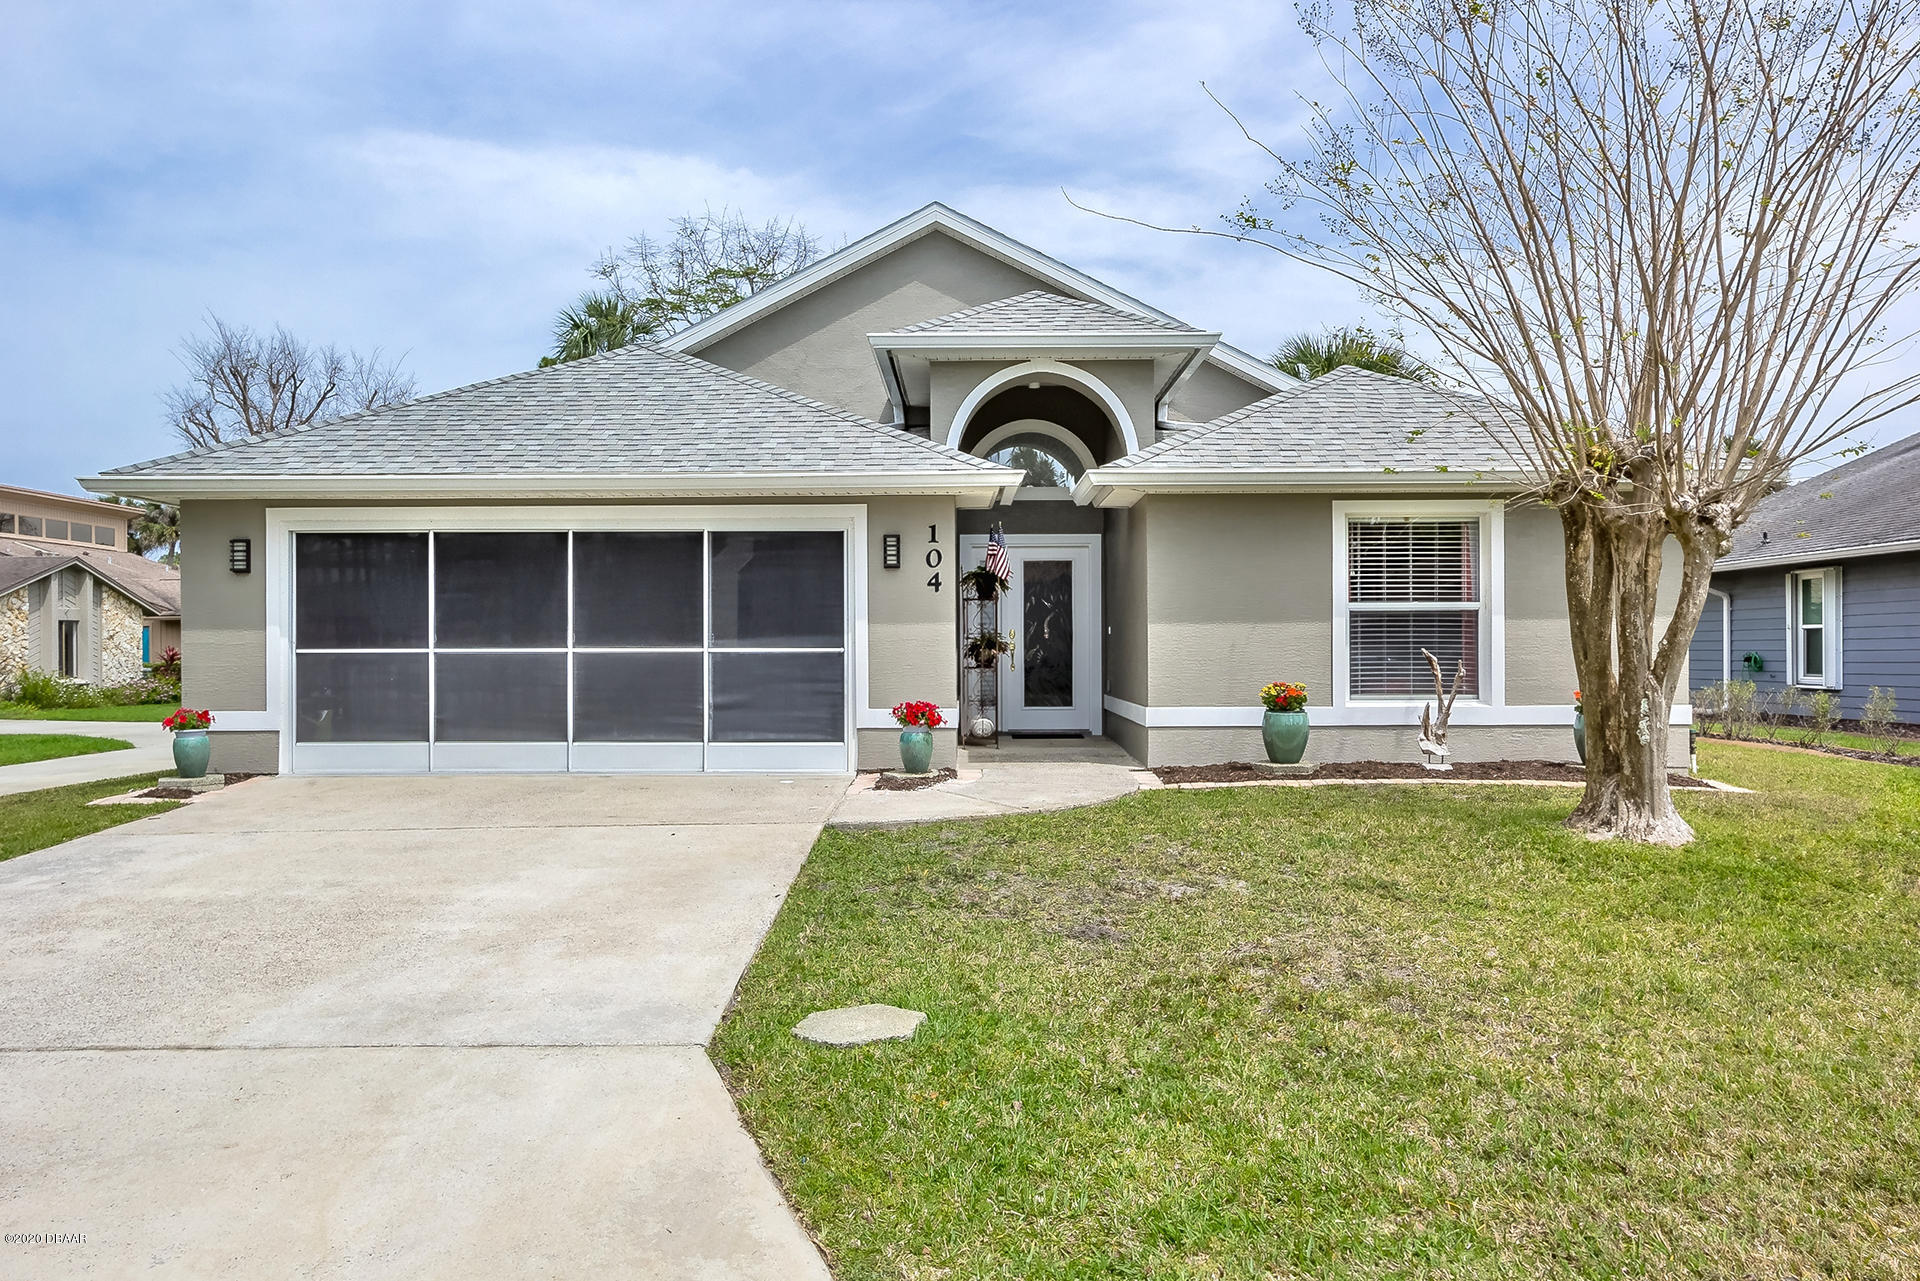 Photo of 104 Killdeer Court, Daytona Beach, FL 32119